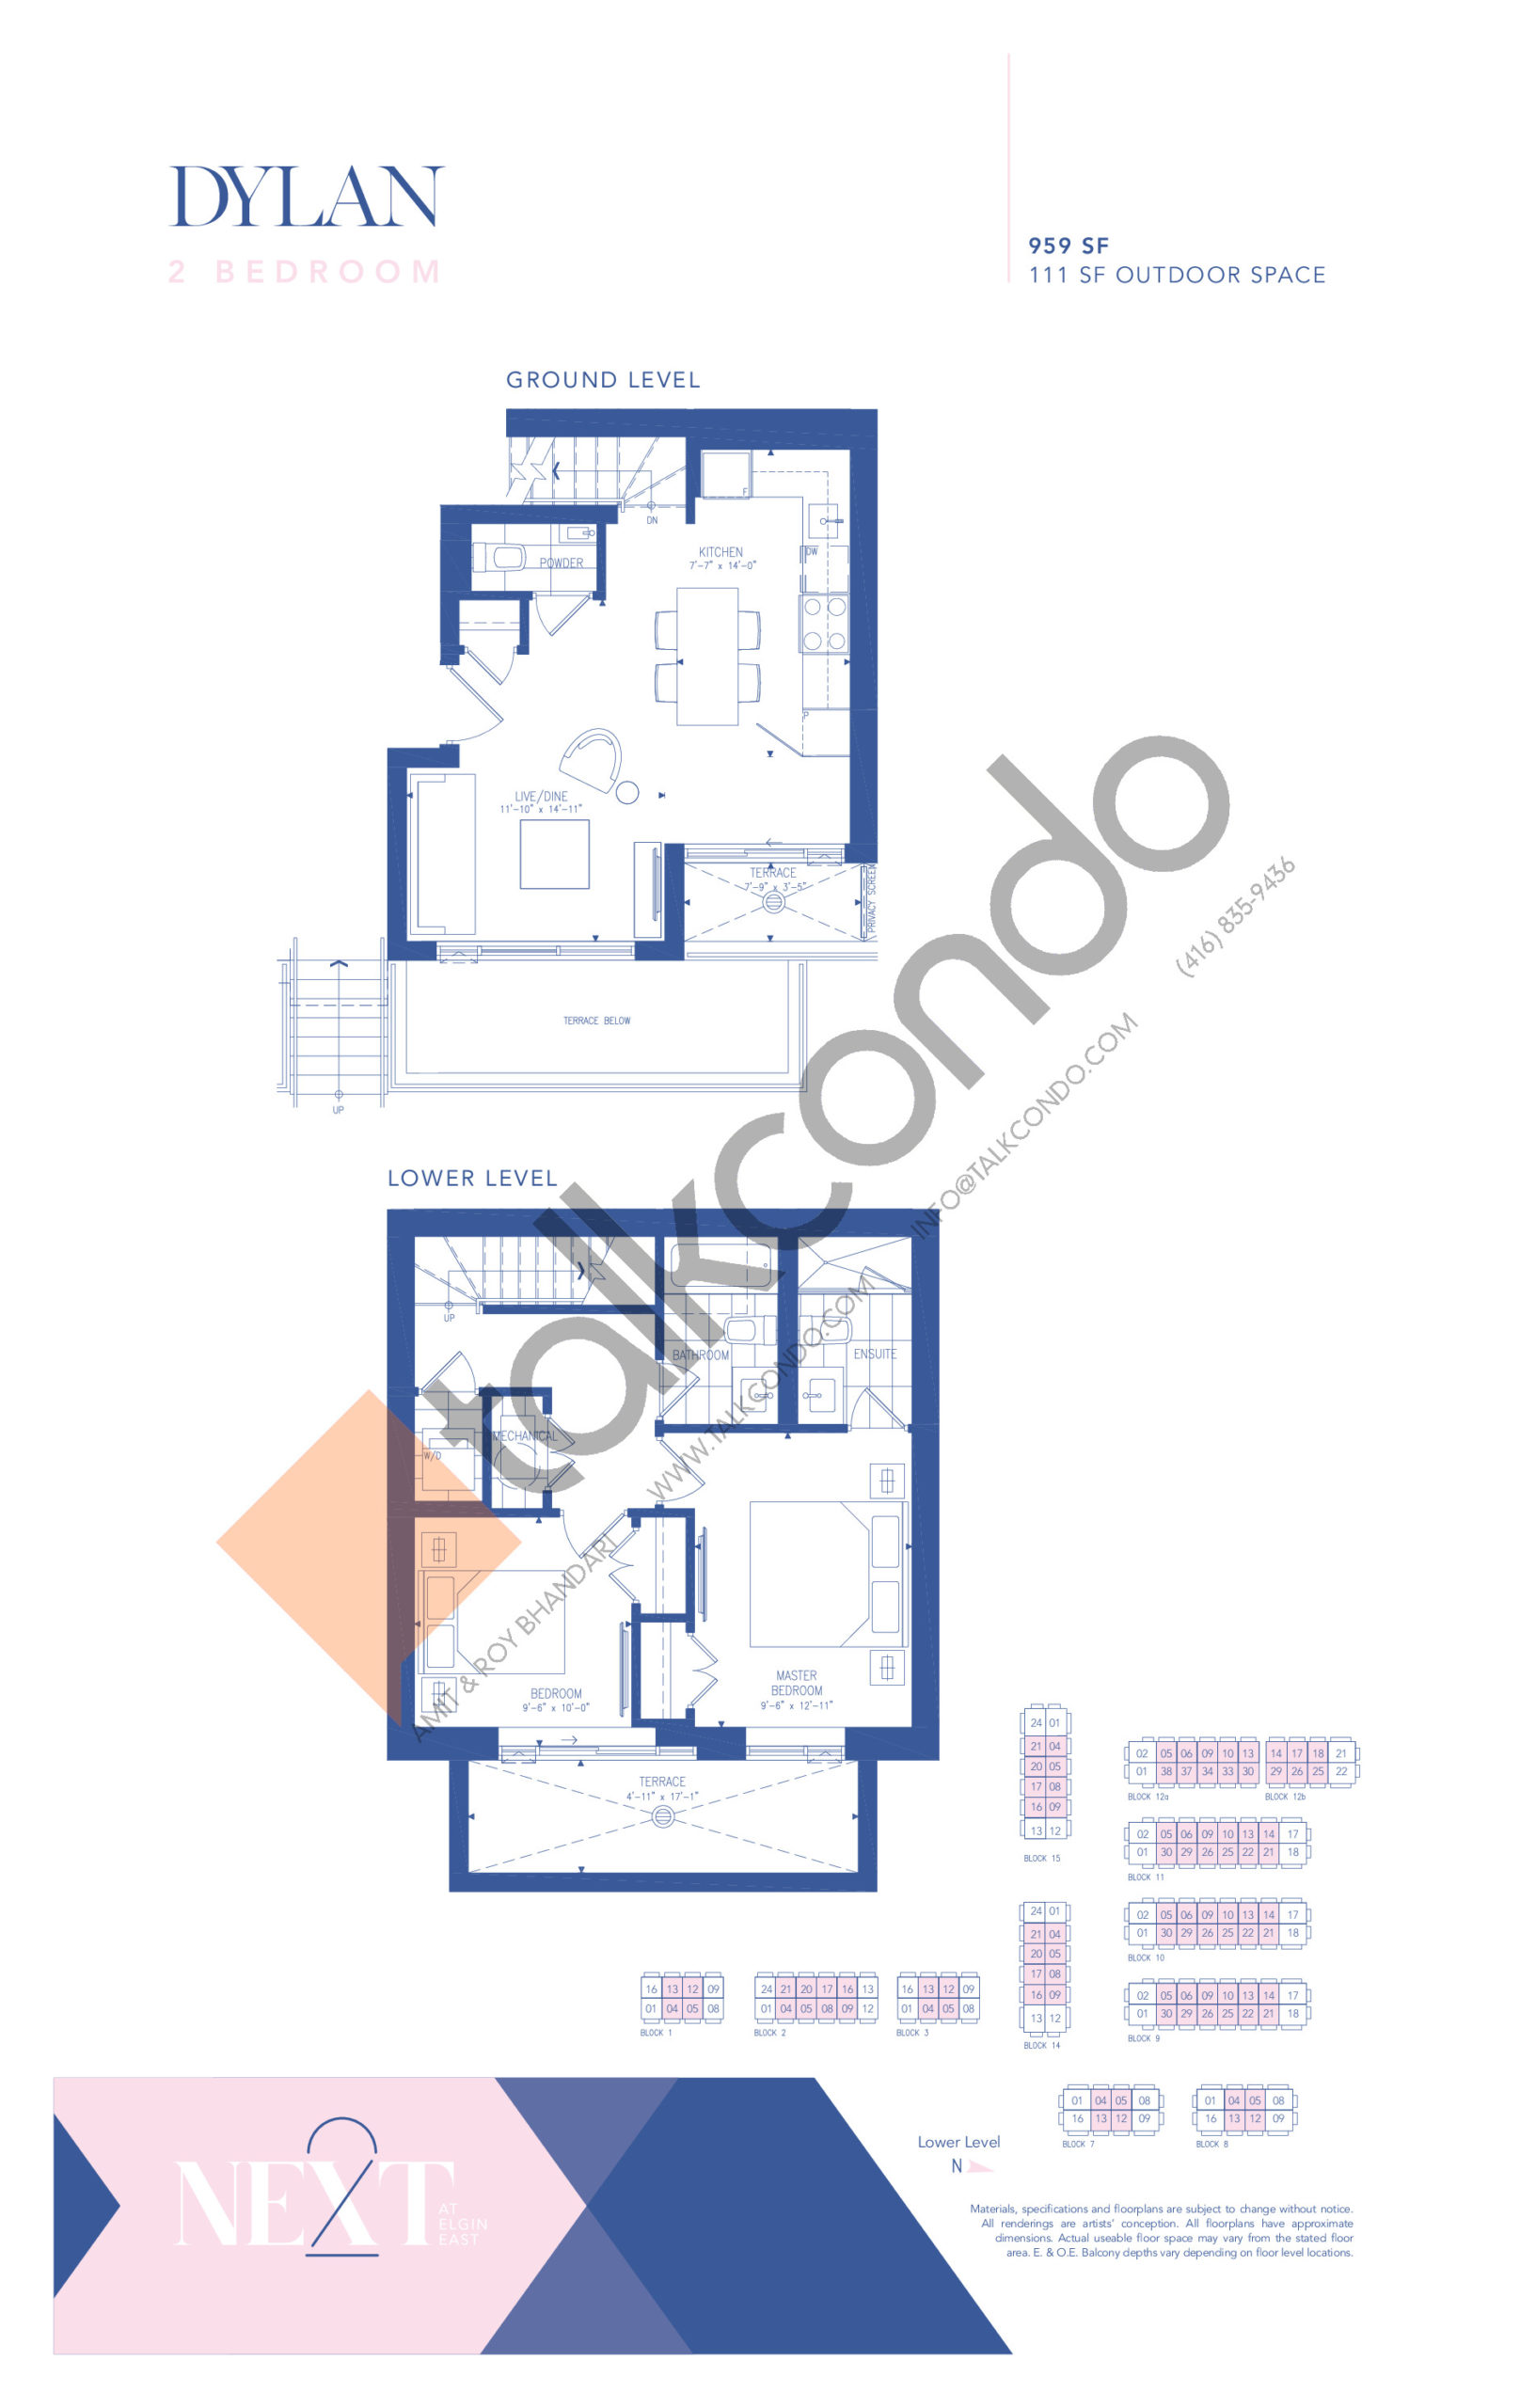 Dylan Floor Plan at NEXT - Elgin East Phase 2 Condos - 959 sq.ft